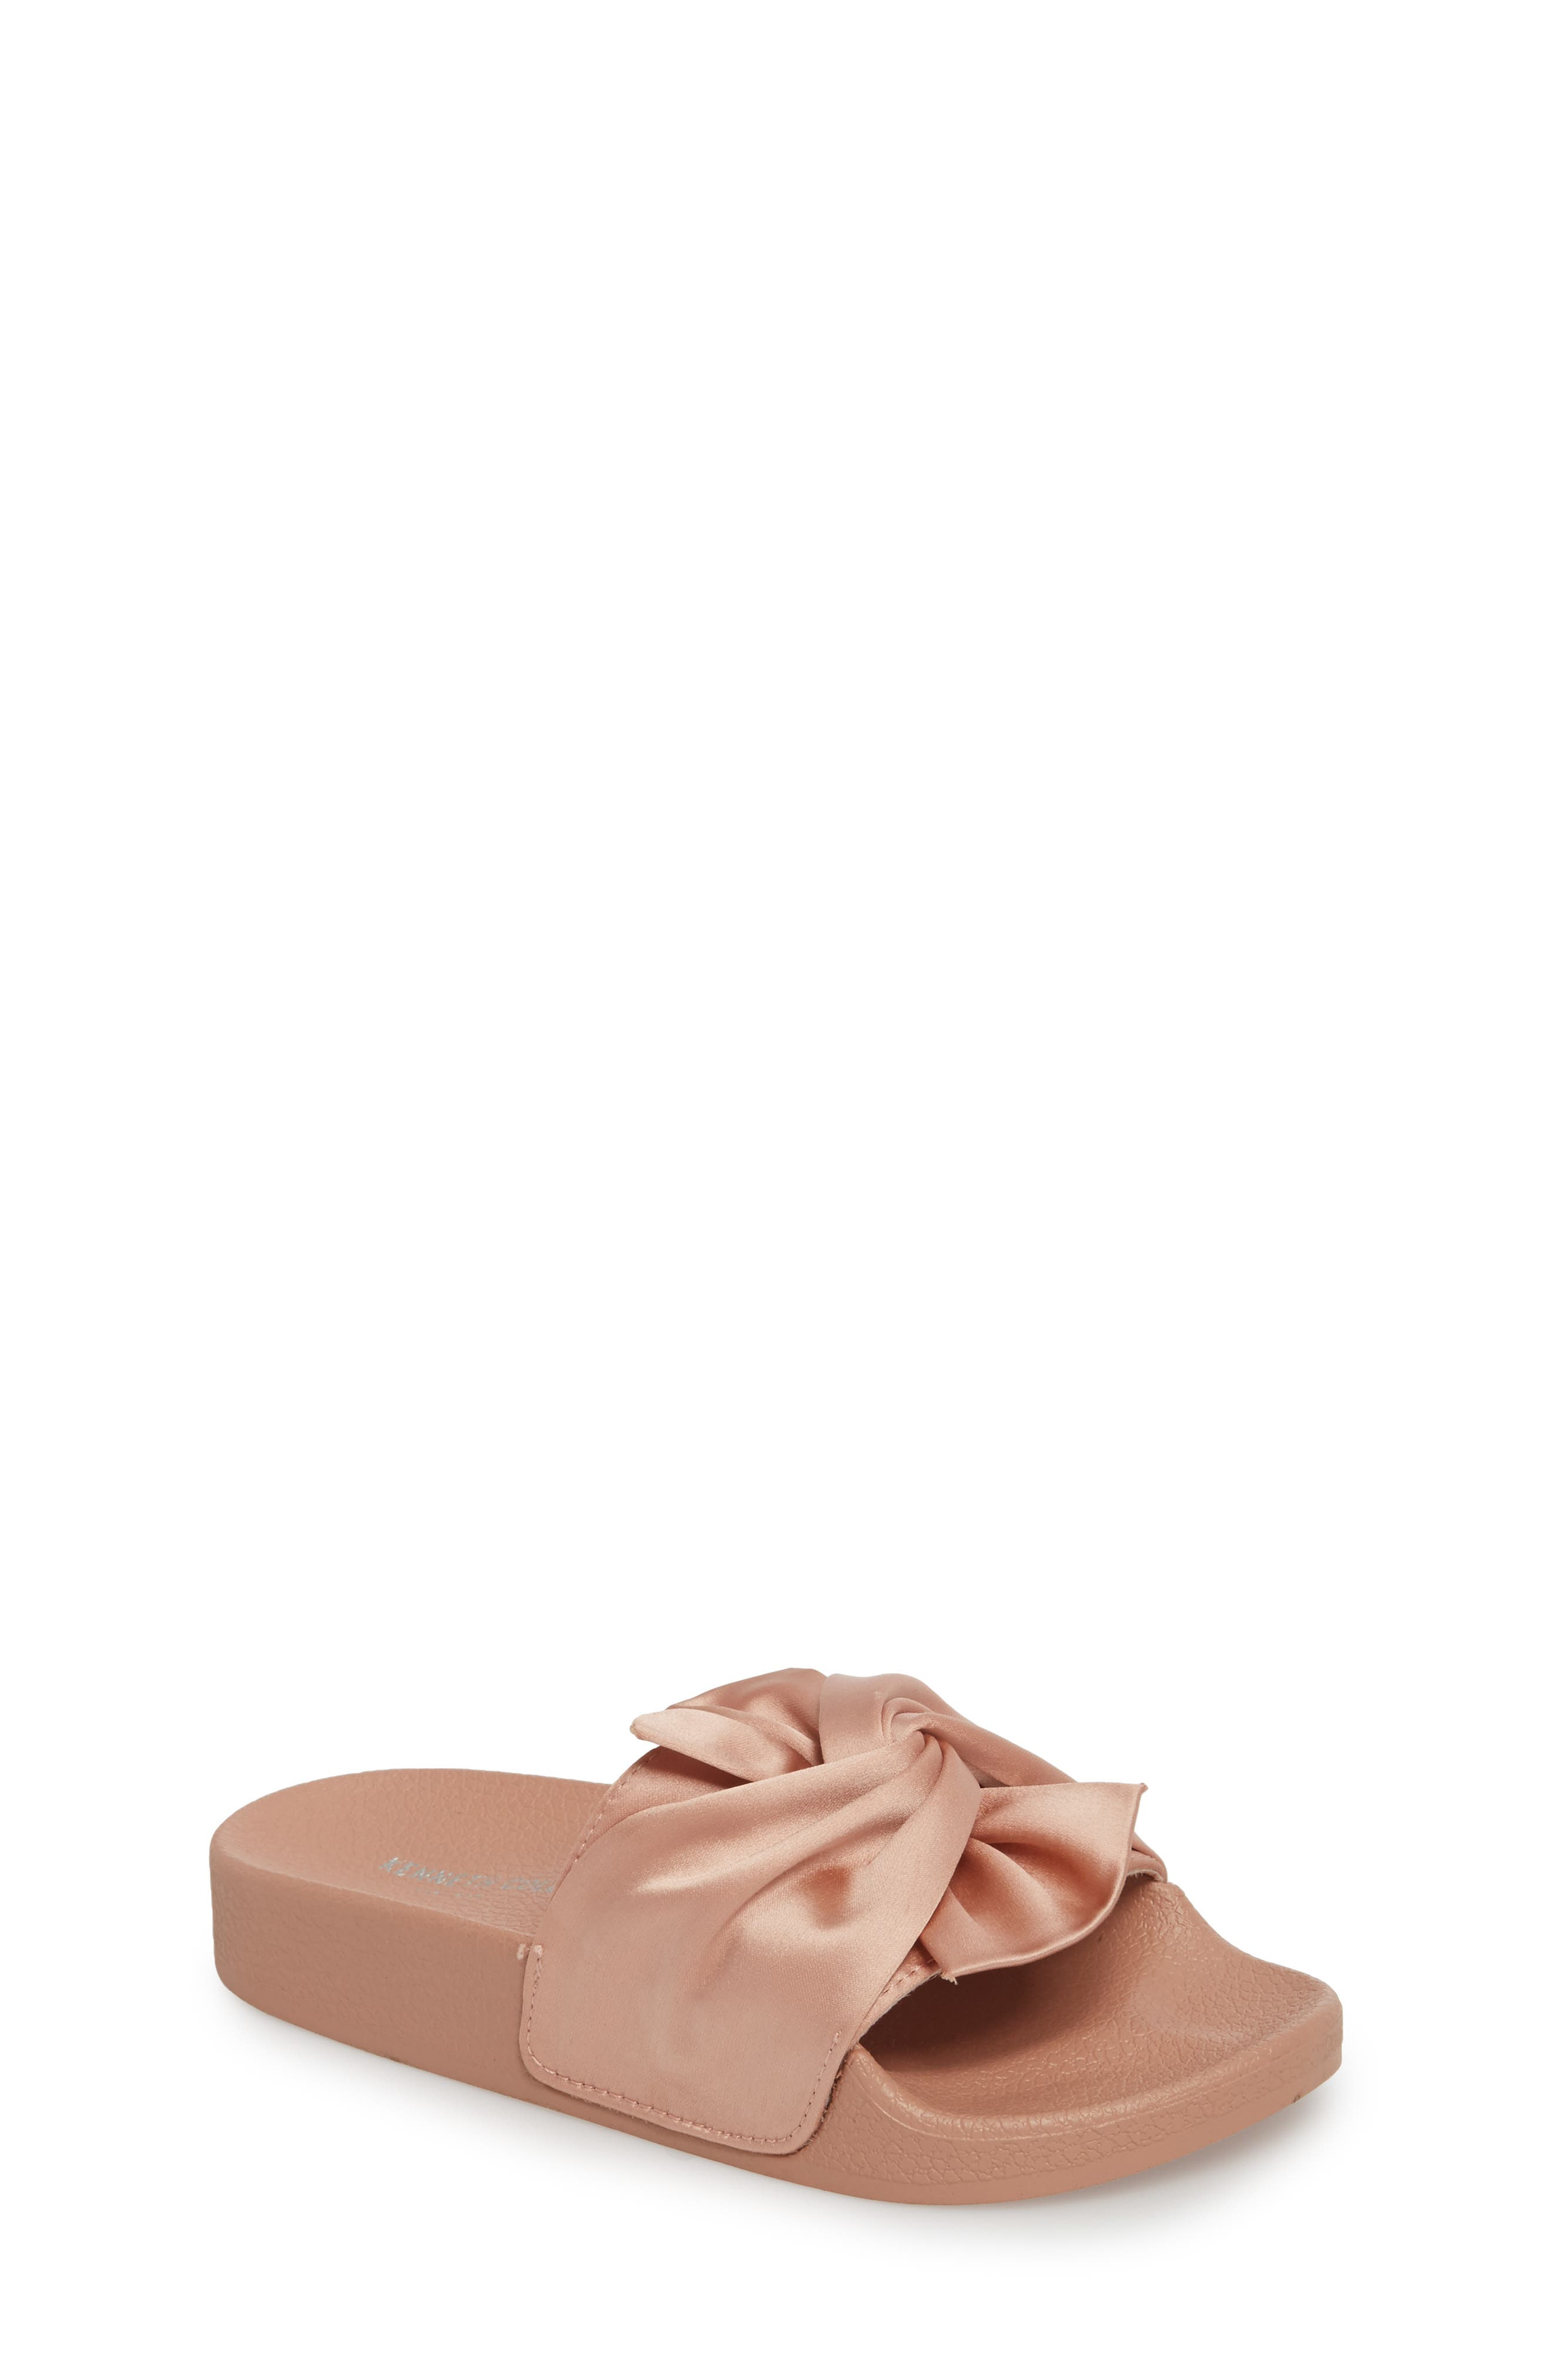 Reaction Kenneth Cole Shower Twist Slide Sandal (Toddler, Little Kid & Big Kid)